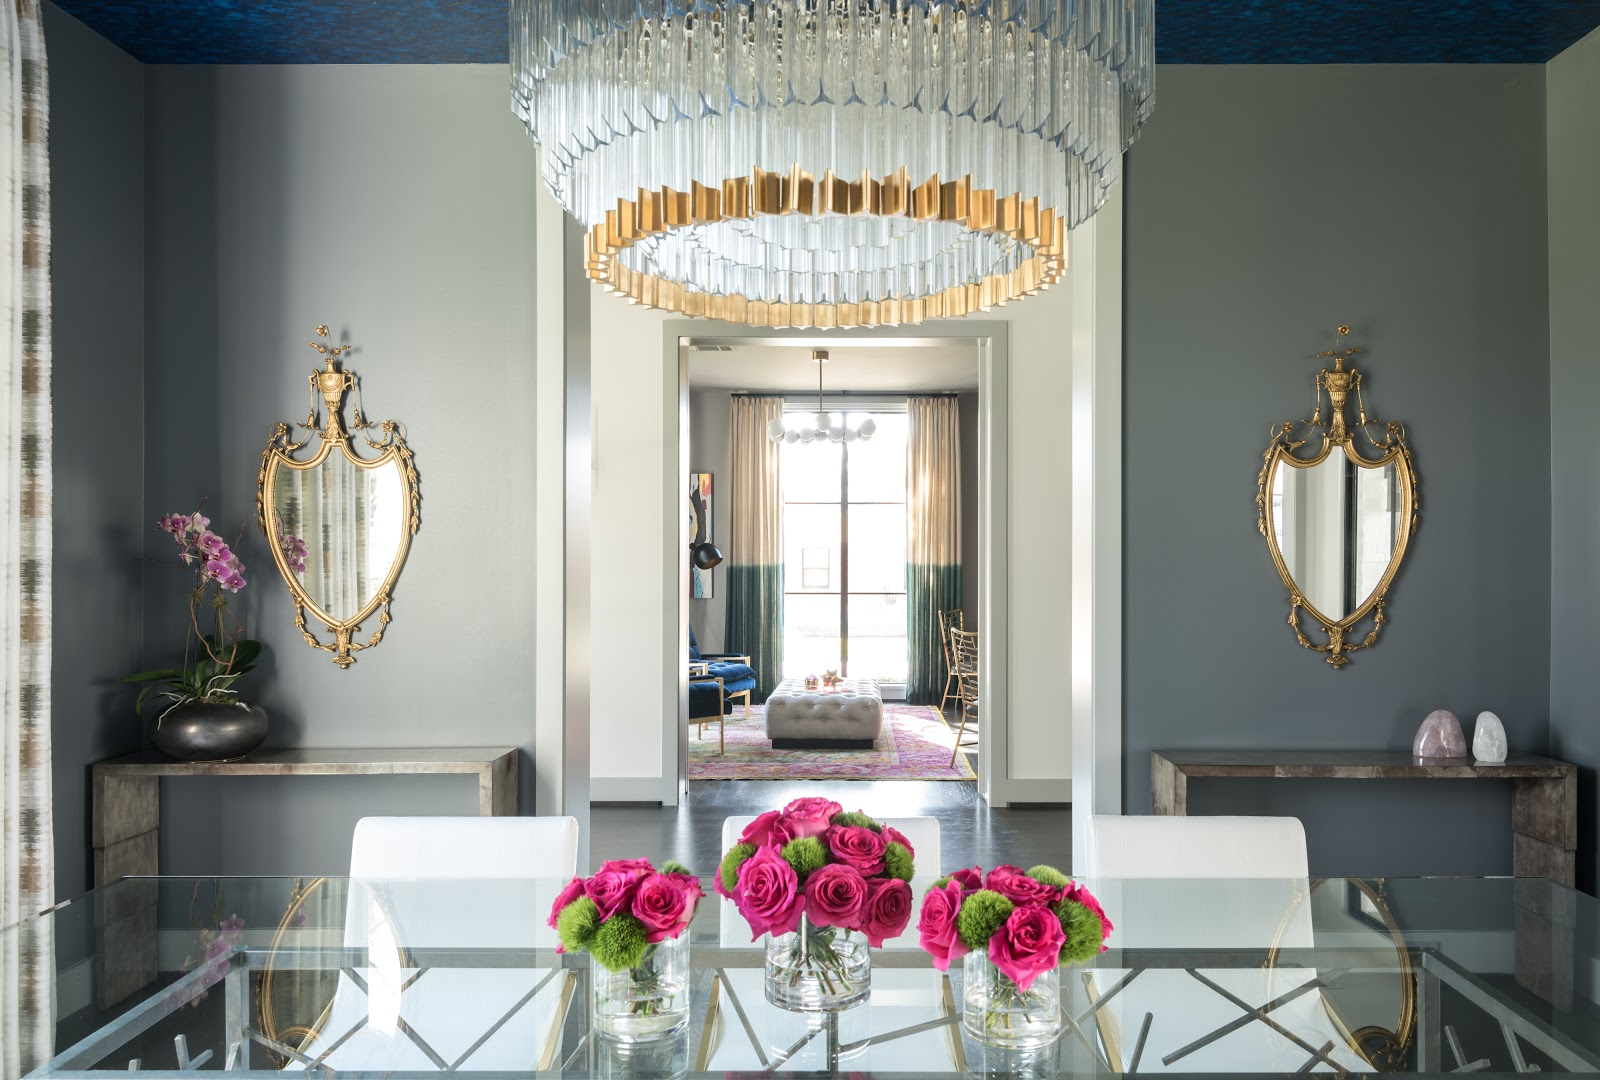 Gold ornate vintage mirrors in transitional dining room - Laura U Interior Design